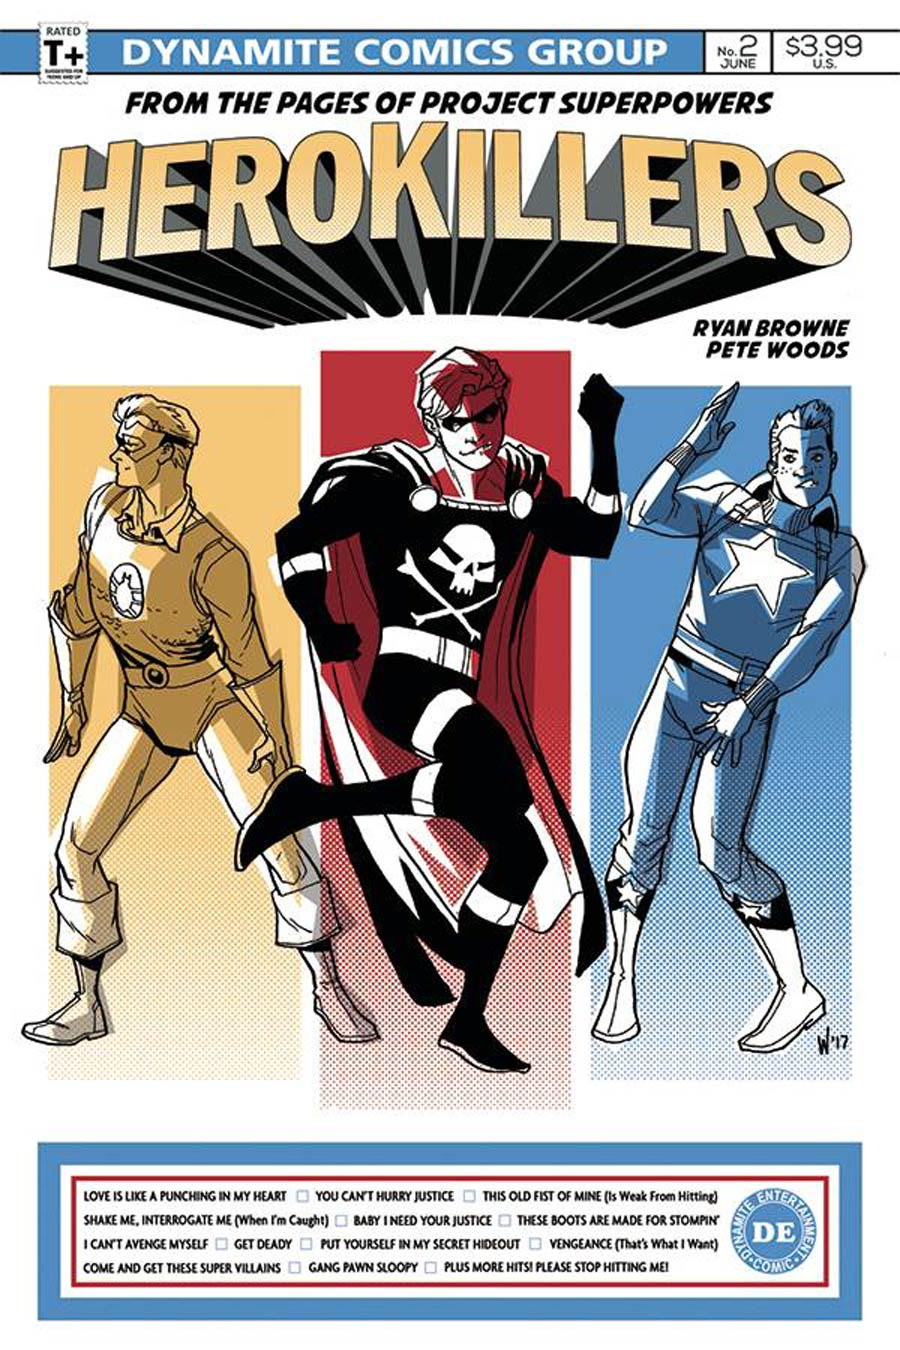 Project Superpowers Hero Killers #2 Cover A Regular Pete Woods Cover